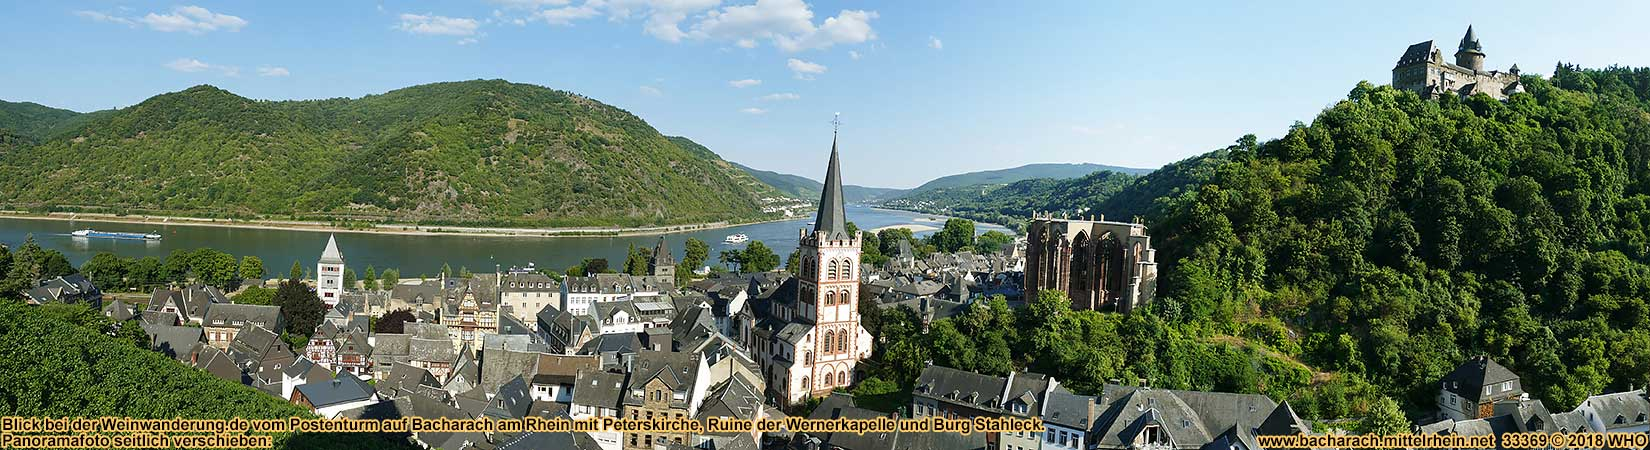 Panorama picture of Bacharach on the Rhine River